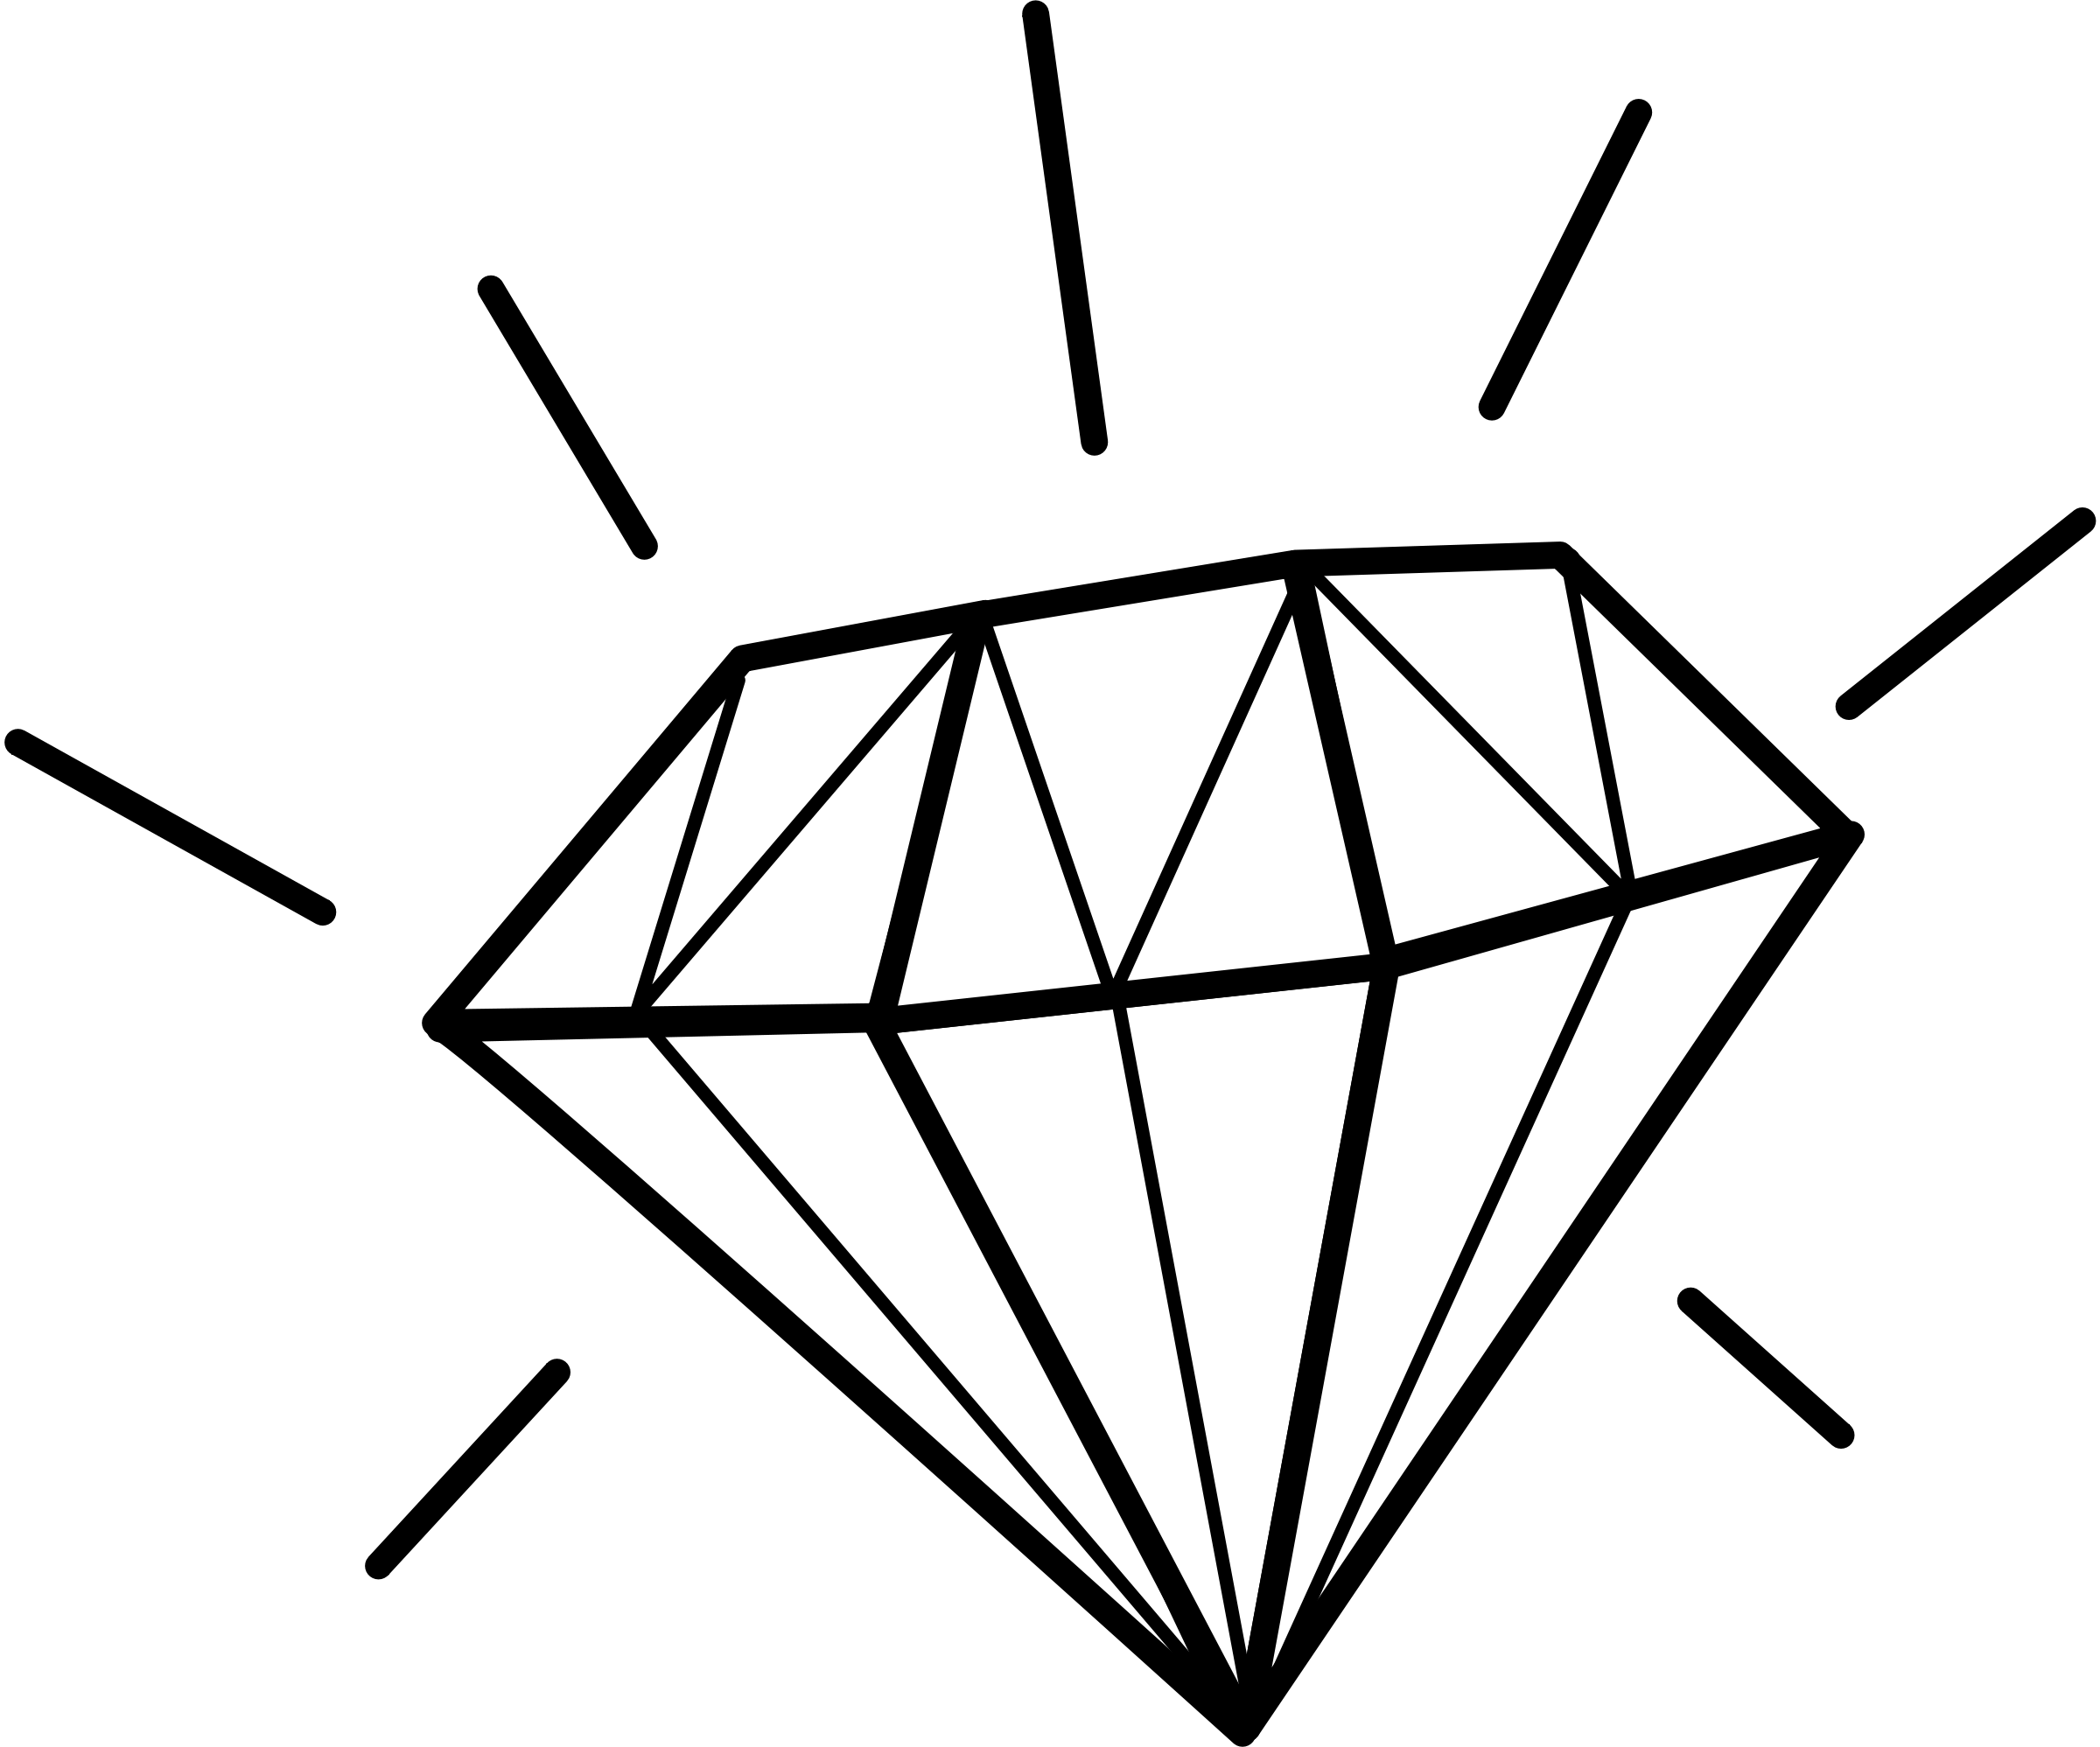 Diamonds clipart #12, Download drawings